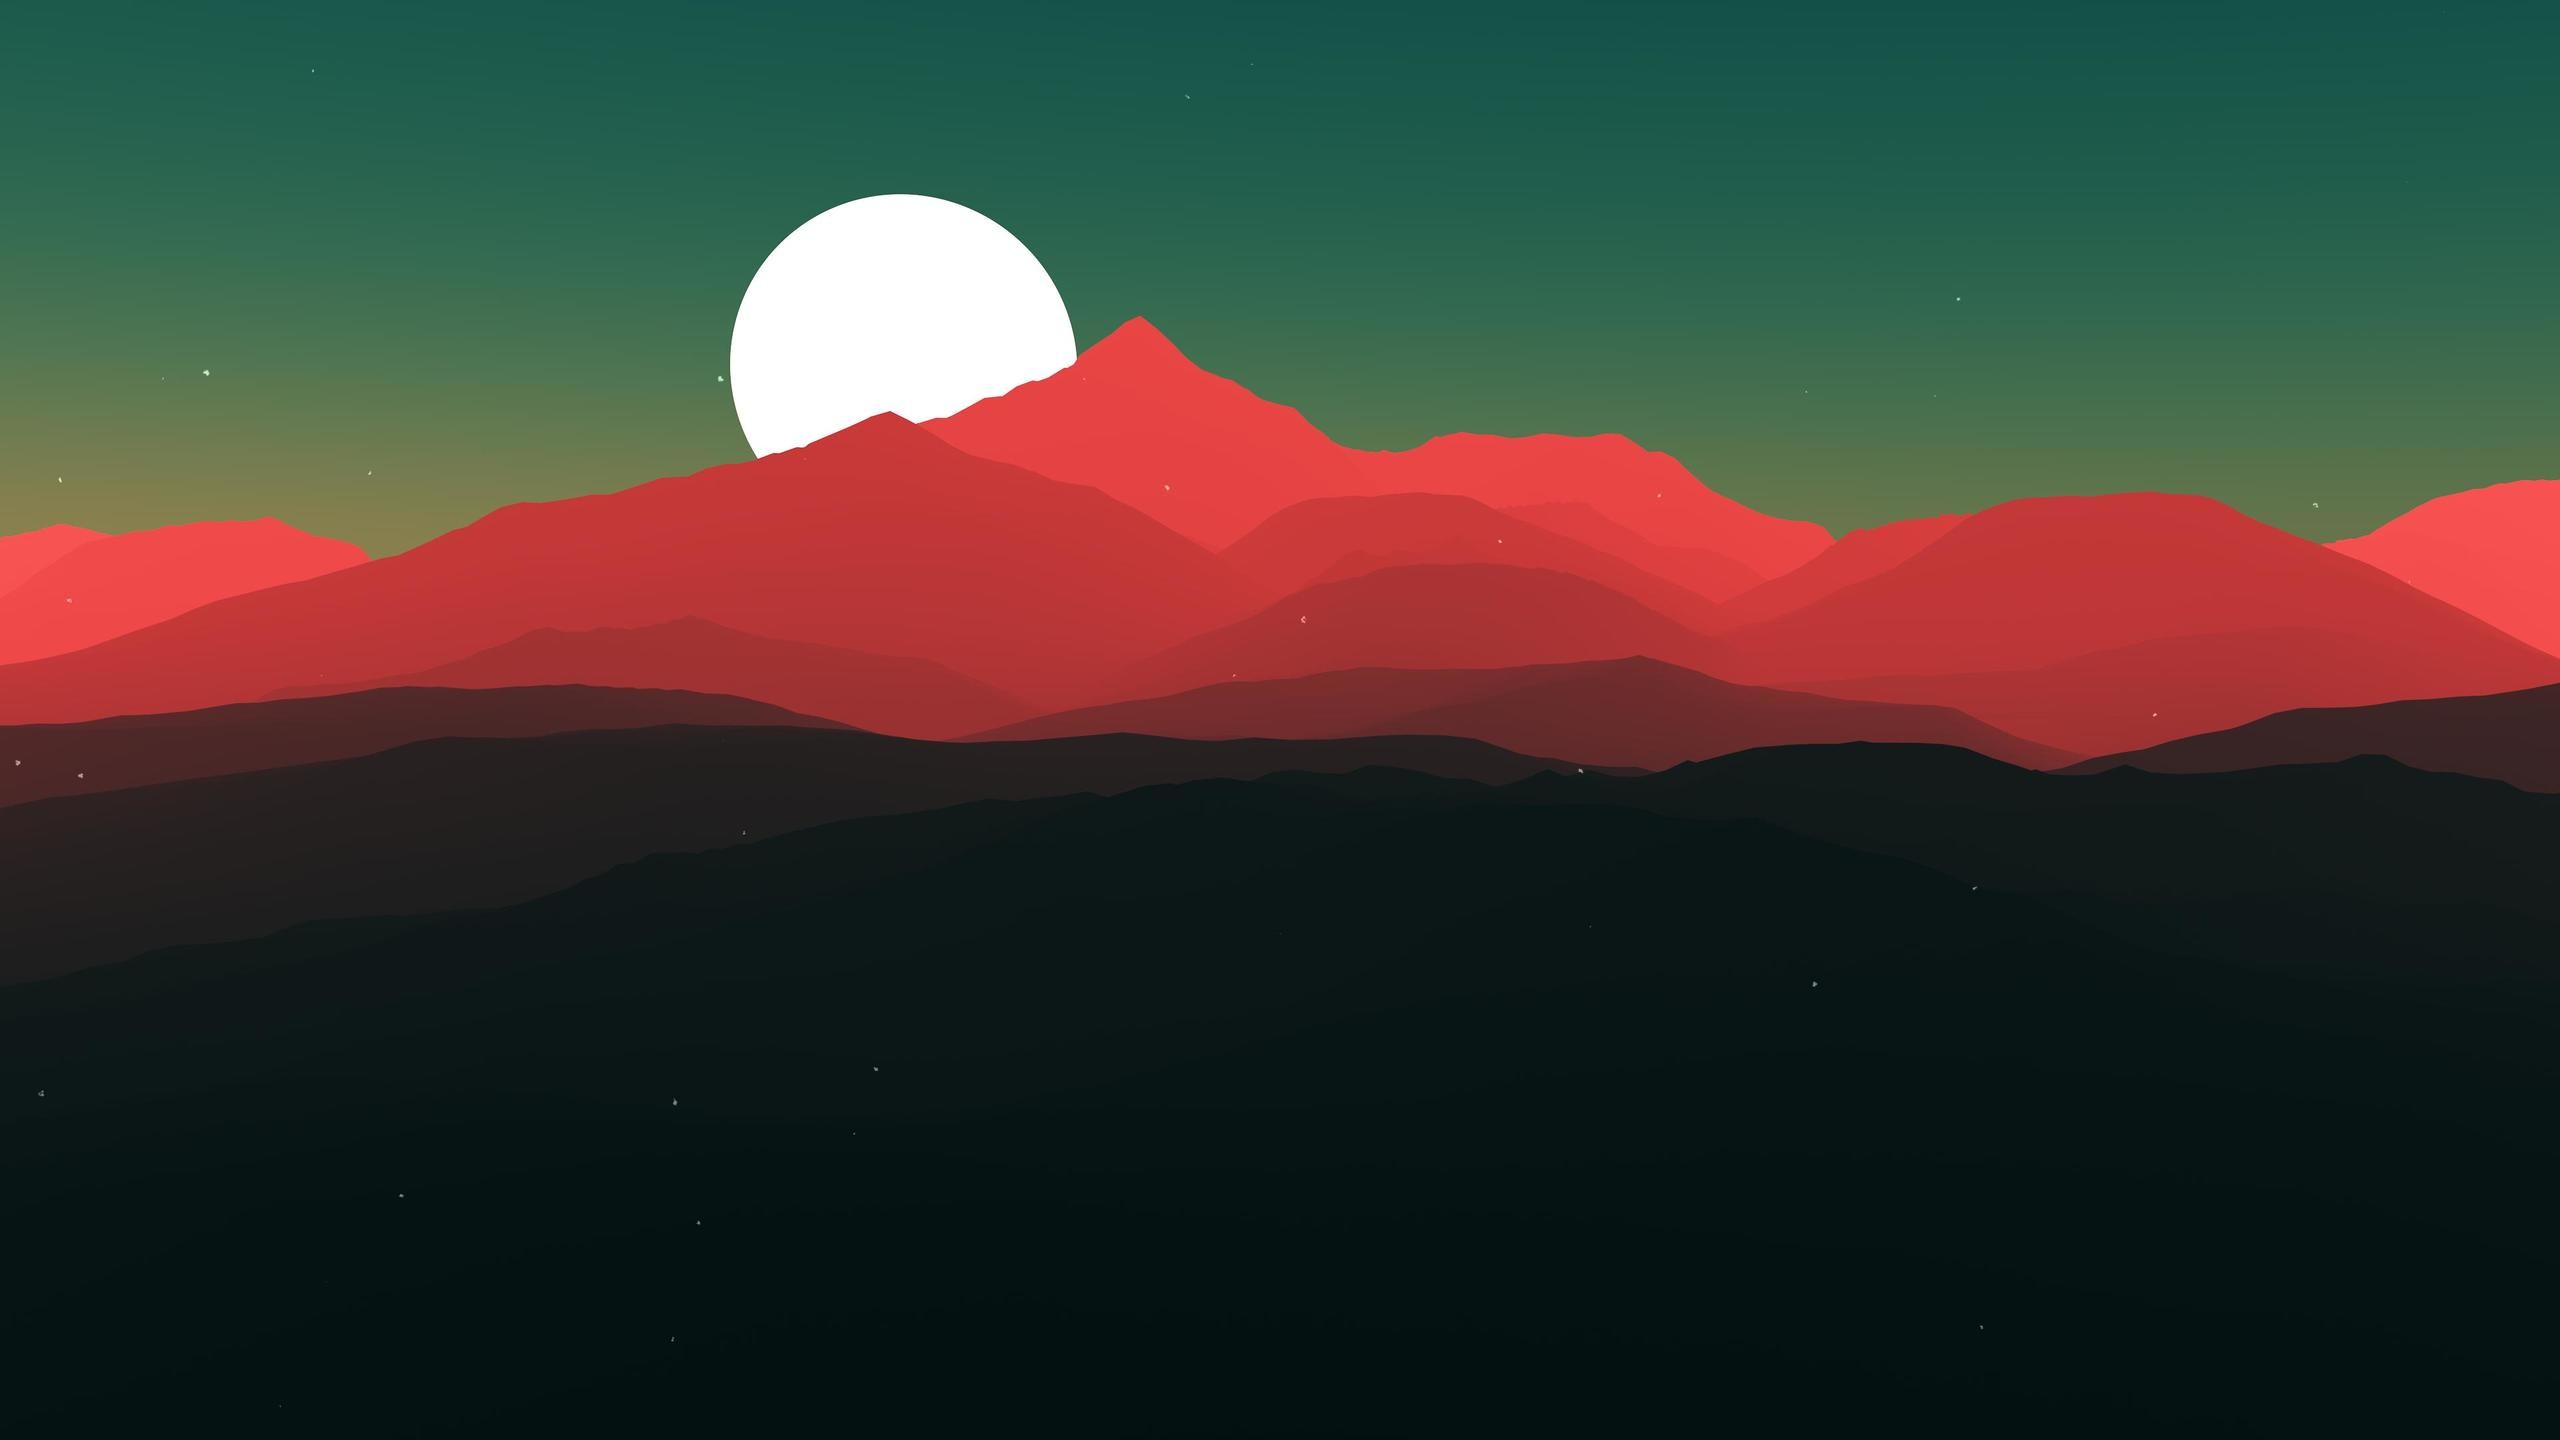 Res: 2560x1440,  Minimalist Landscape 4k 1440P Resolution HD 4k Wallpapers,  Images, Backgrounds, Photos and Pictures